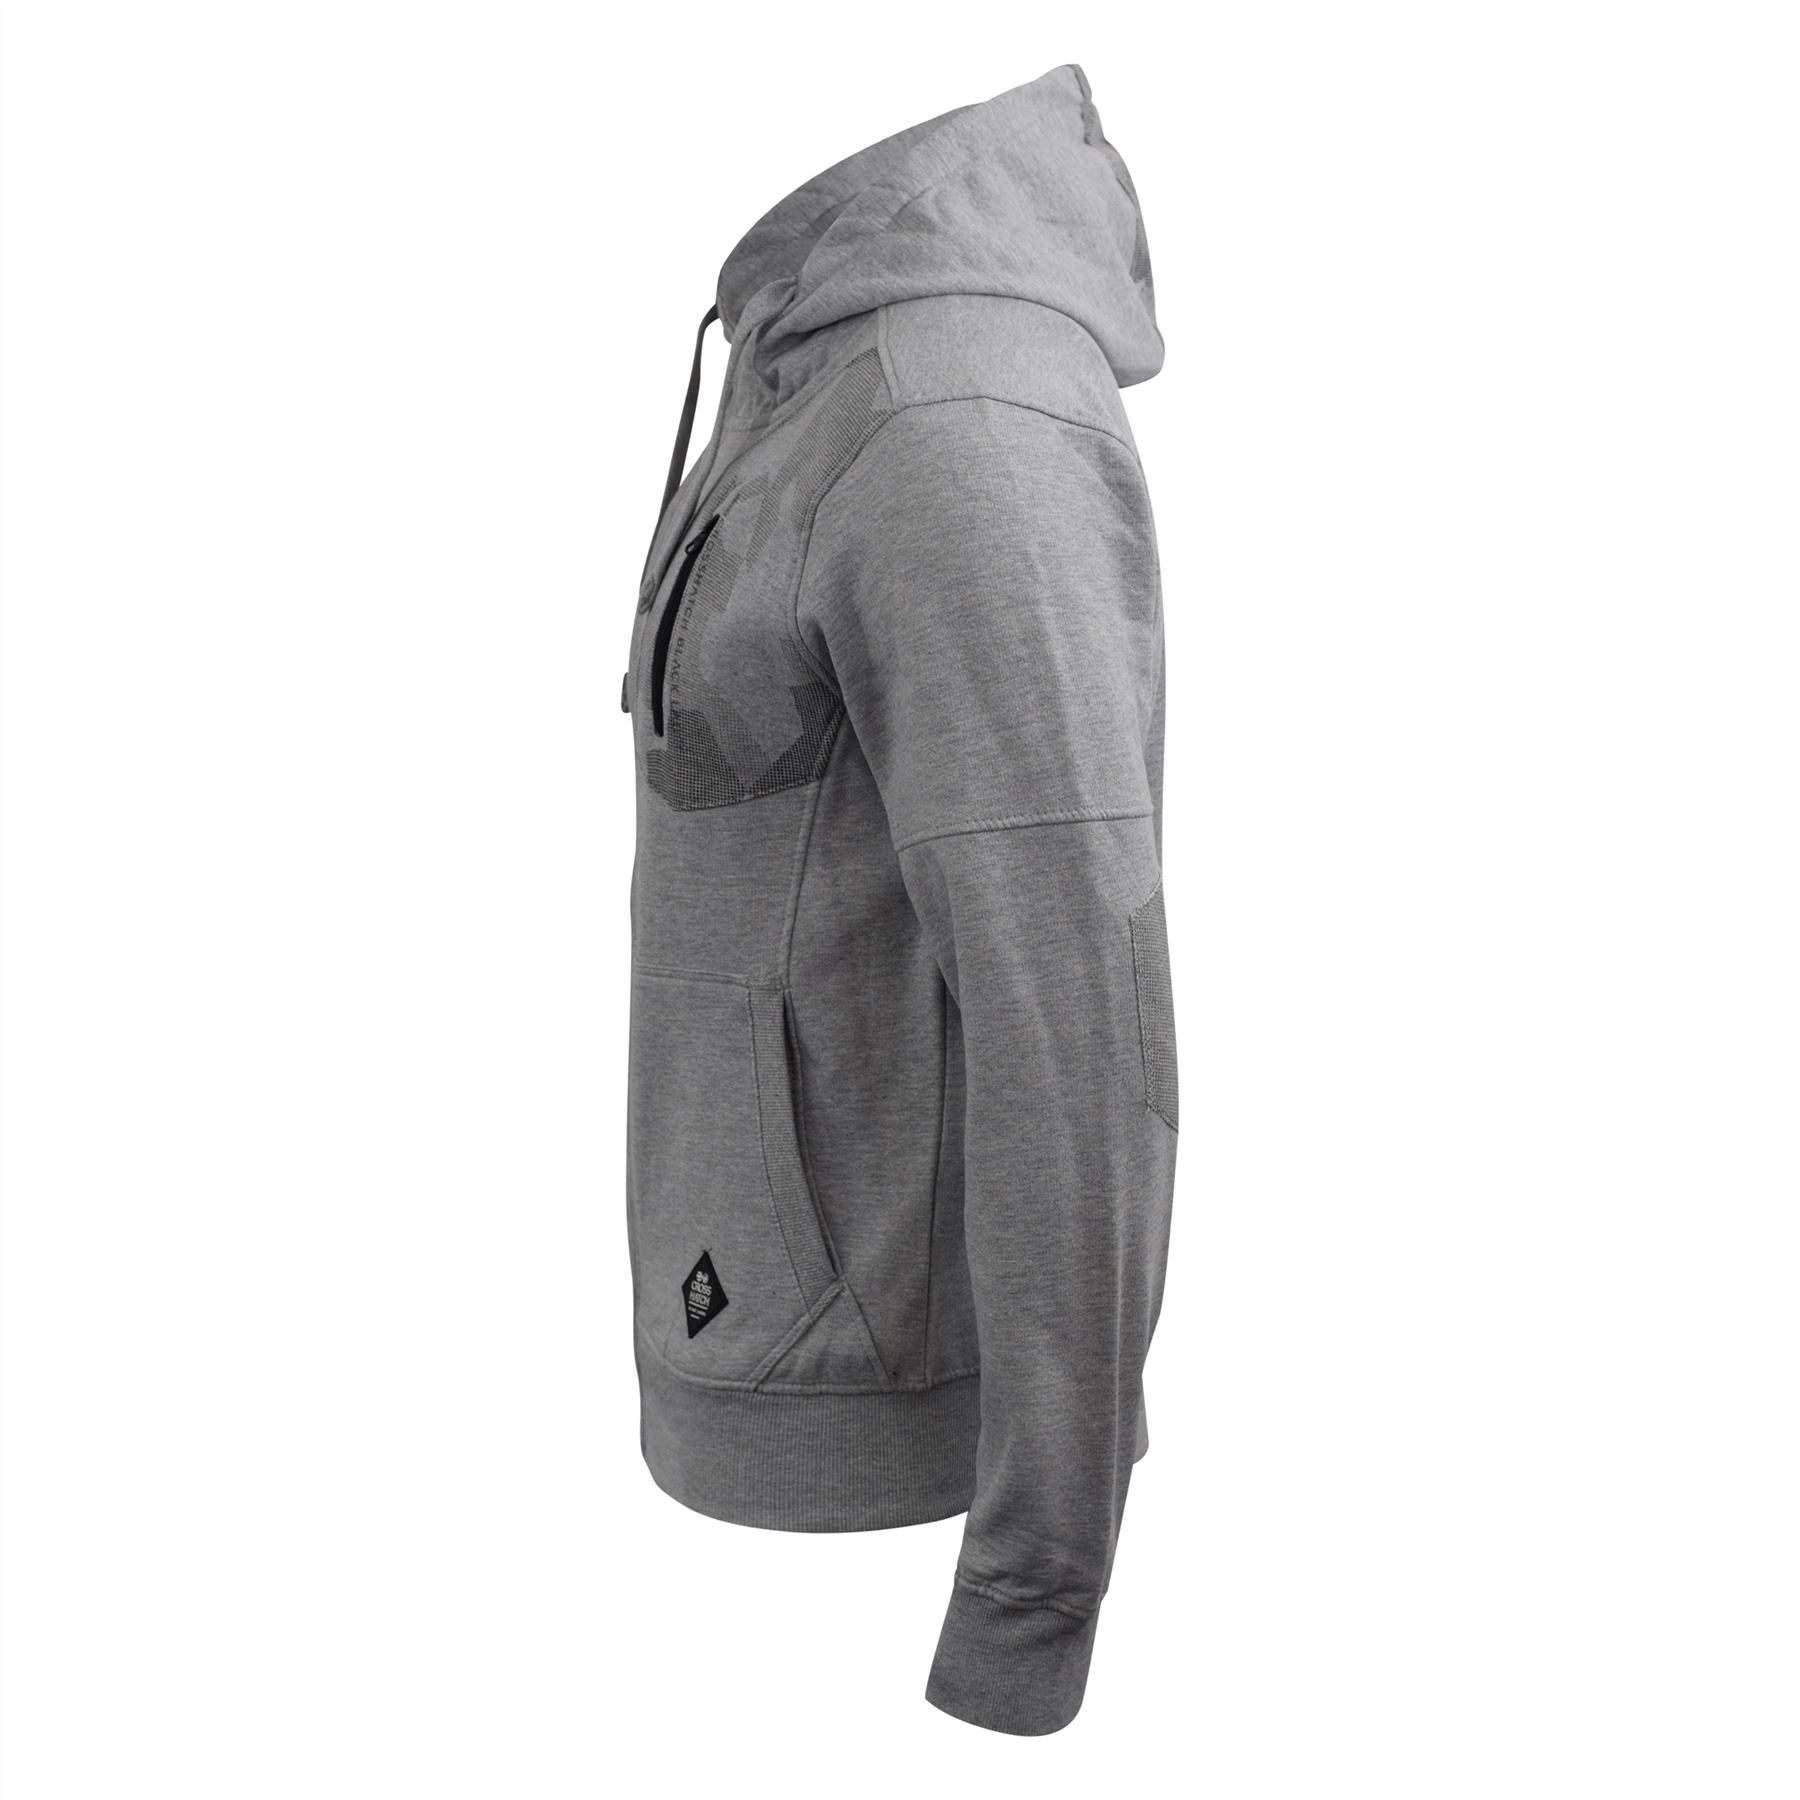 Mens-Hoodie-Crosshatch-Full-Zip-Sweatshirt-Hooded-Jumper-Top-Pullover-Radzim thumbnail 9